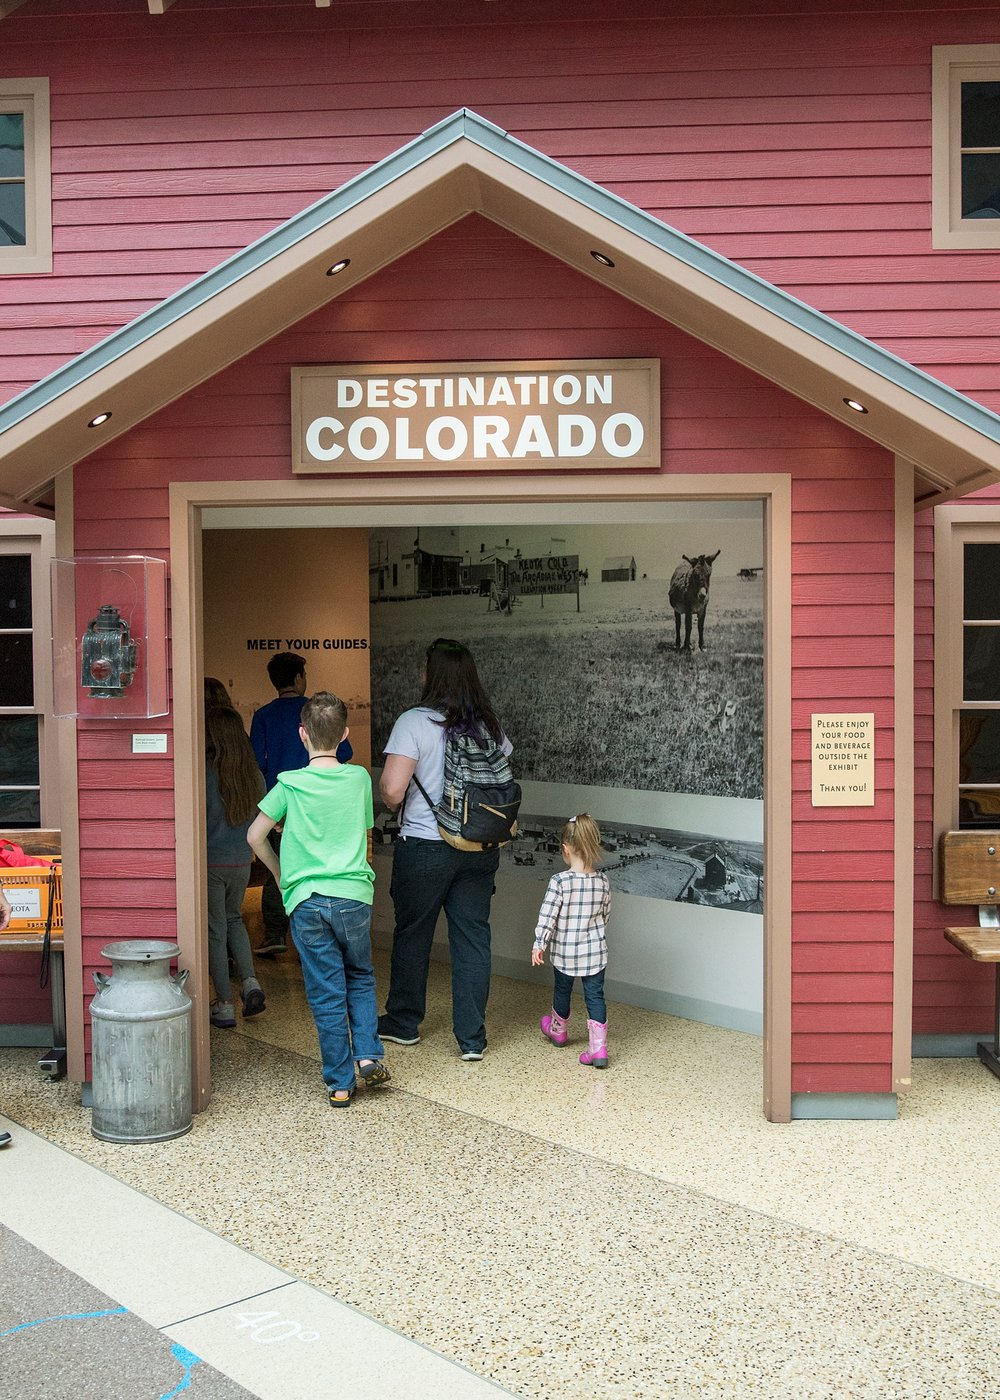 We unschooled our way around the History Colorado Center last week and even took a time traveler tour. It was awesome!